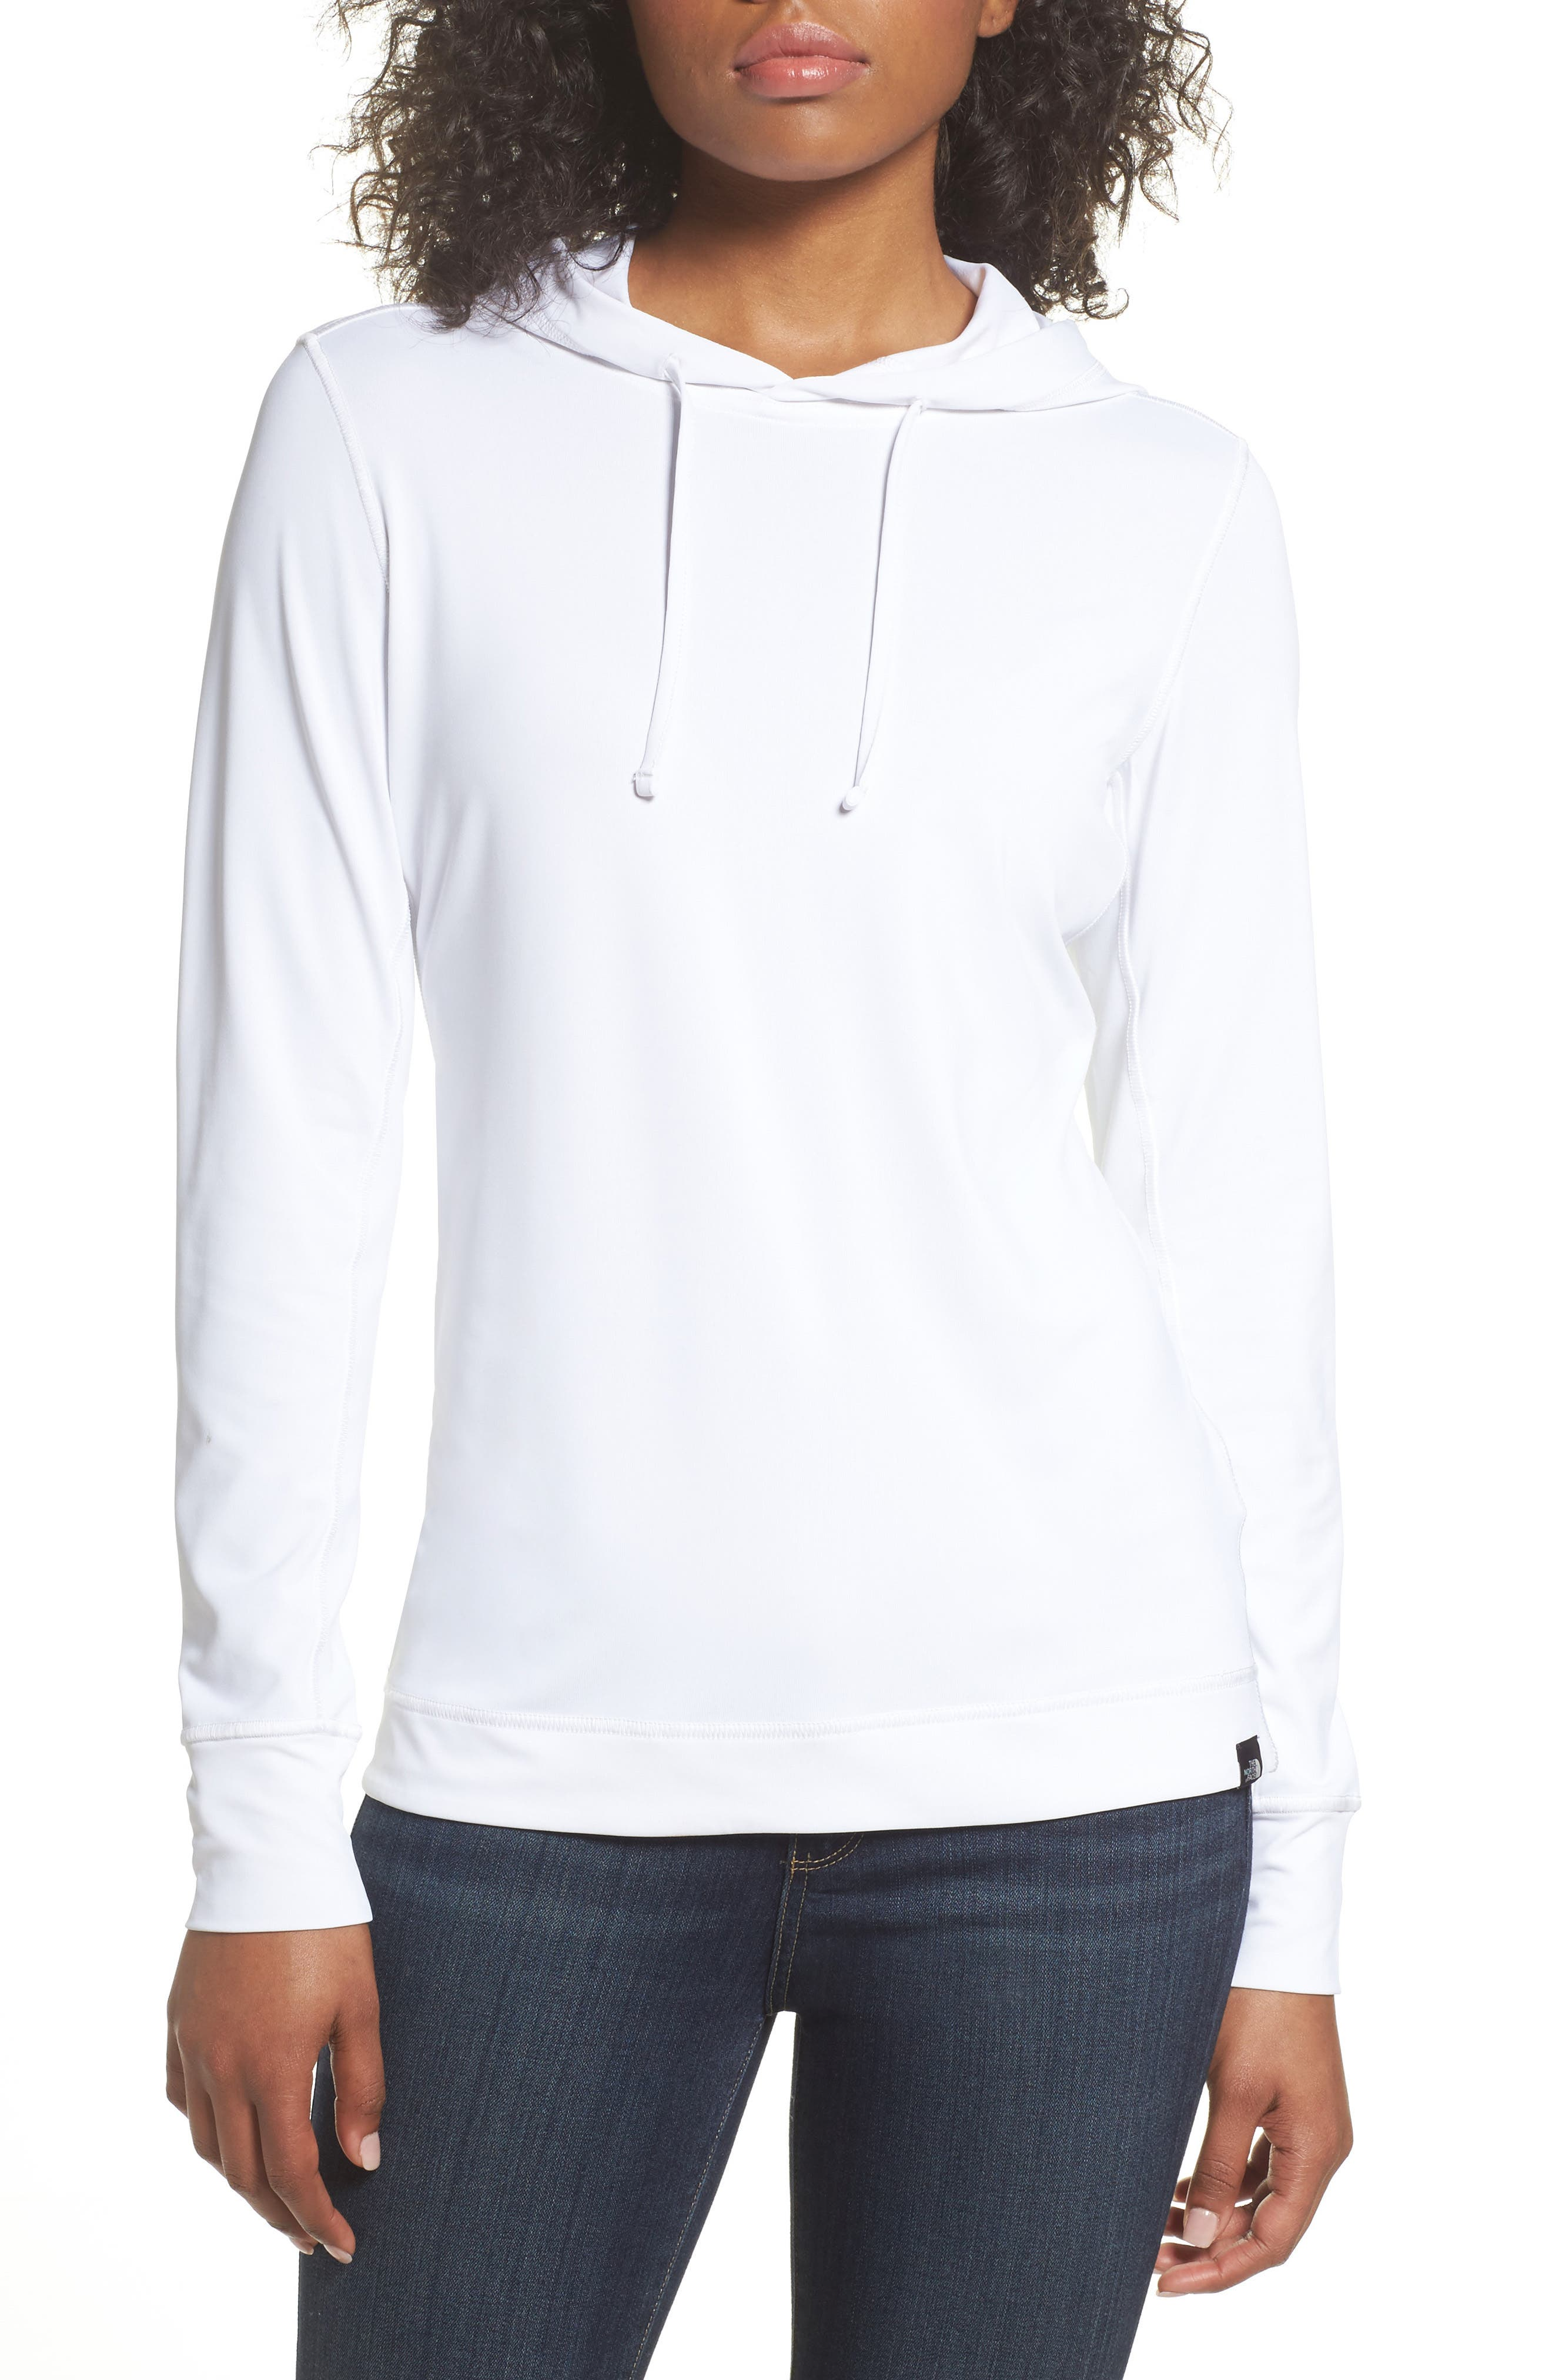 Shade Me Hooded Top,                         Main,                         color, 100